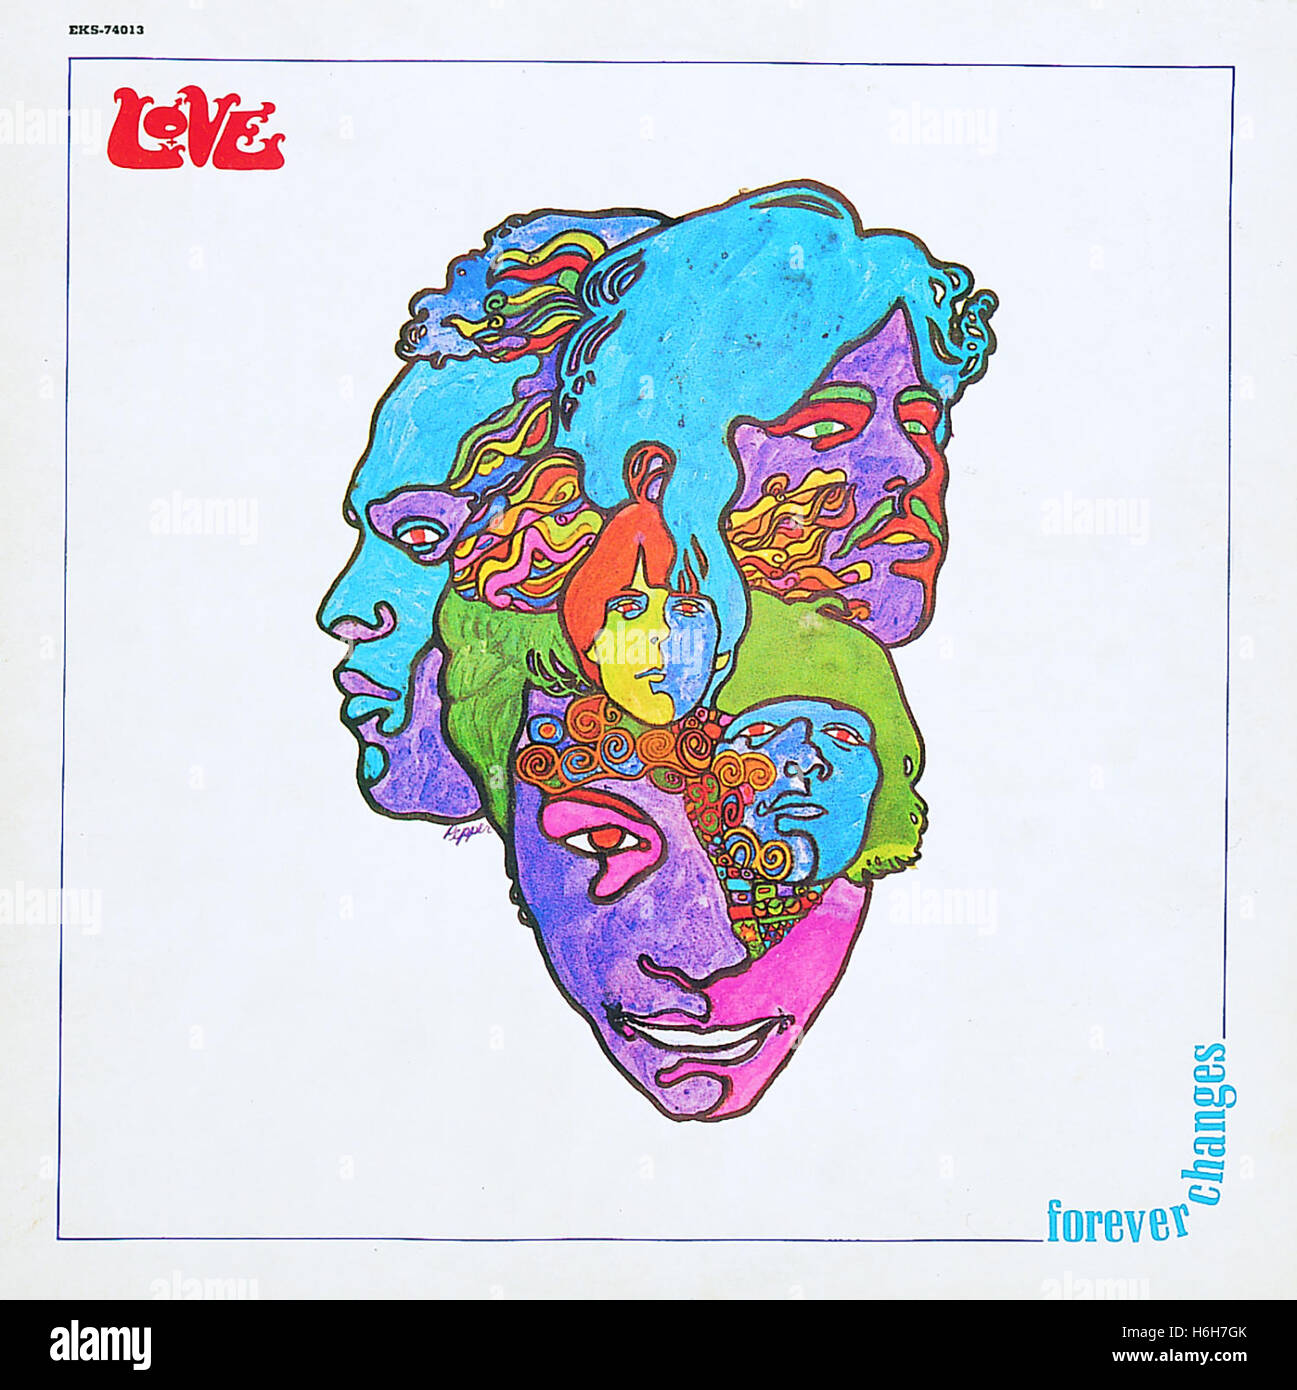 The cover of the 1967 album  'Forever Changes' by the band LOVE featuring Arthur Lee. - Stock Image